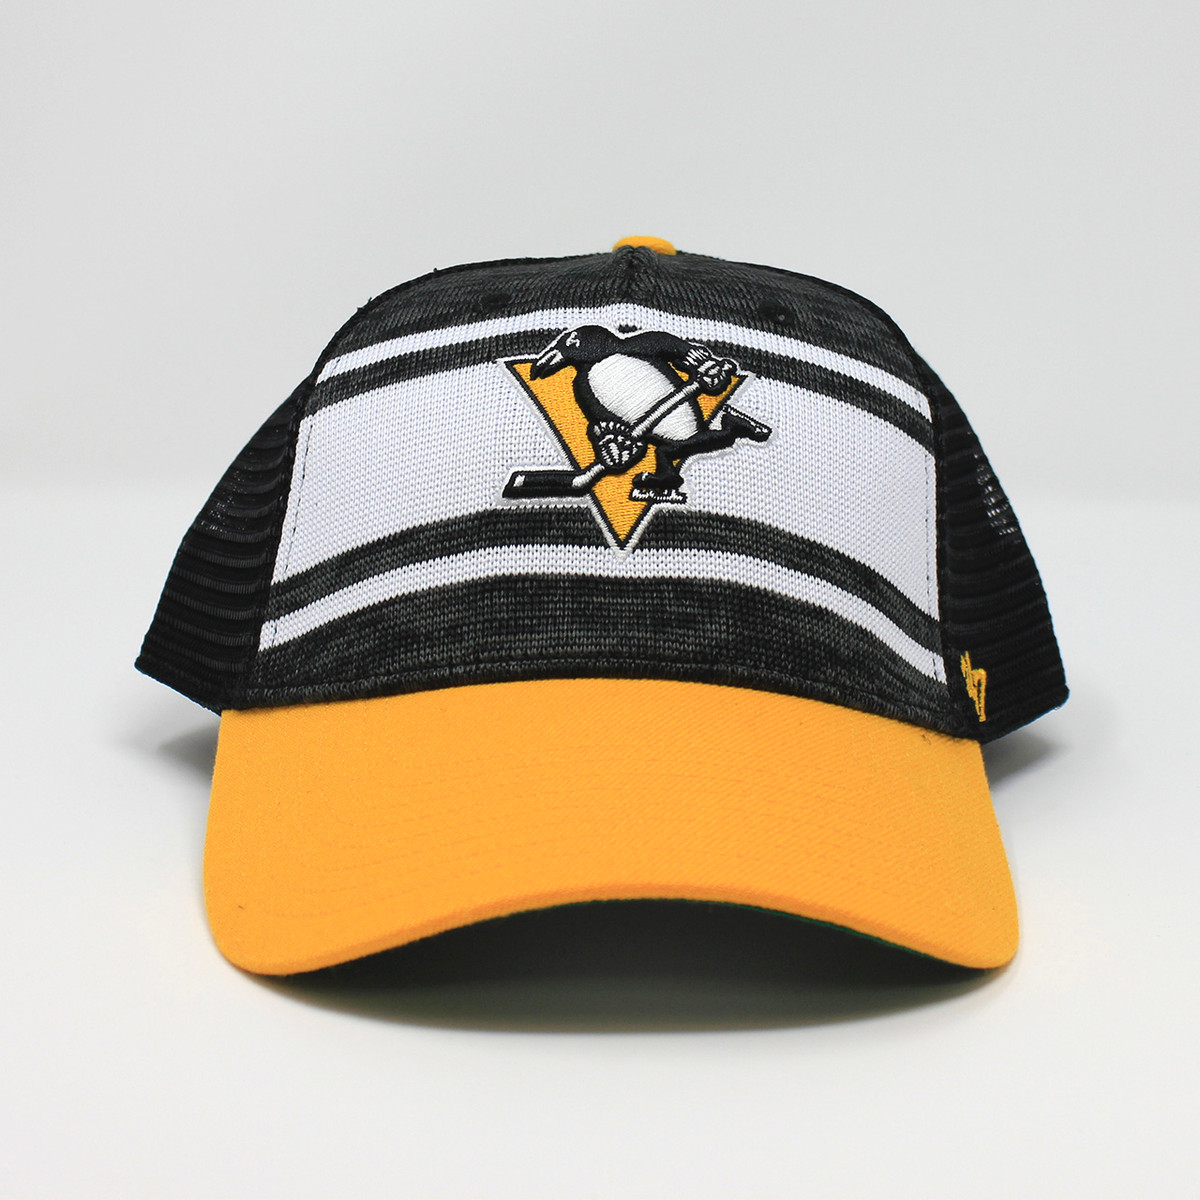 Power Play 47 MVP Penguins Mesh